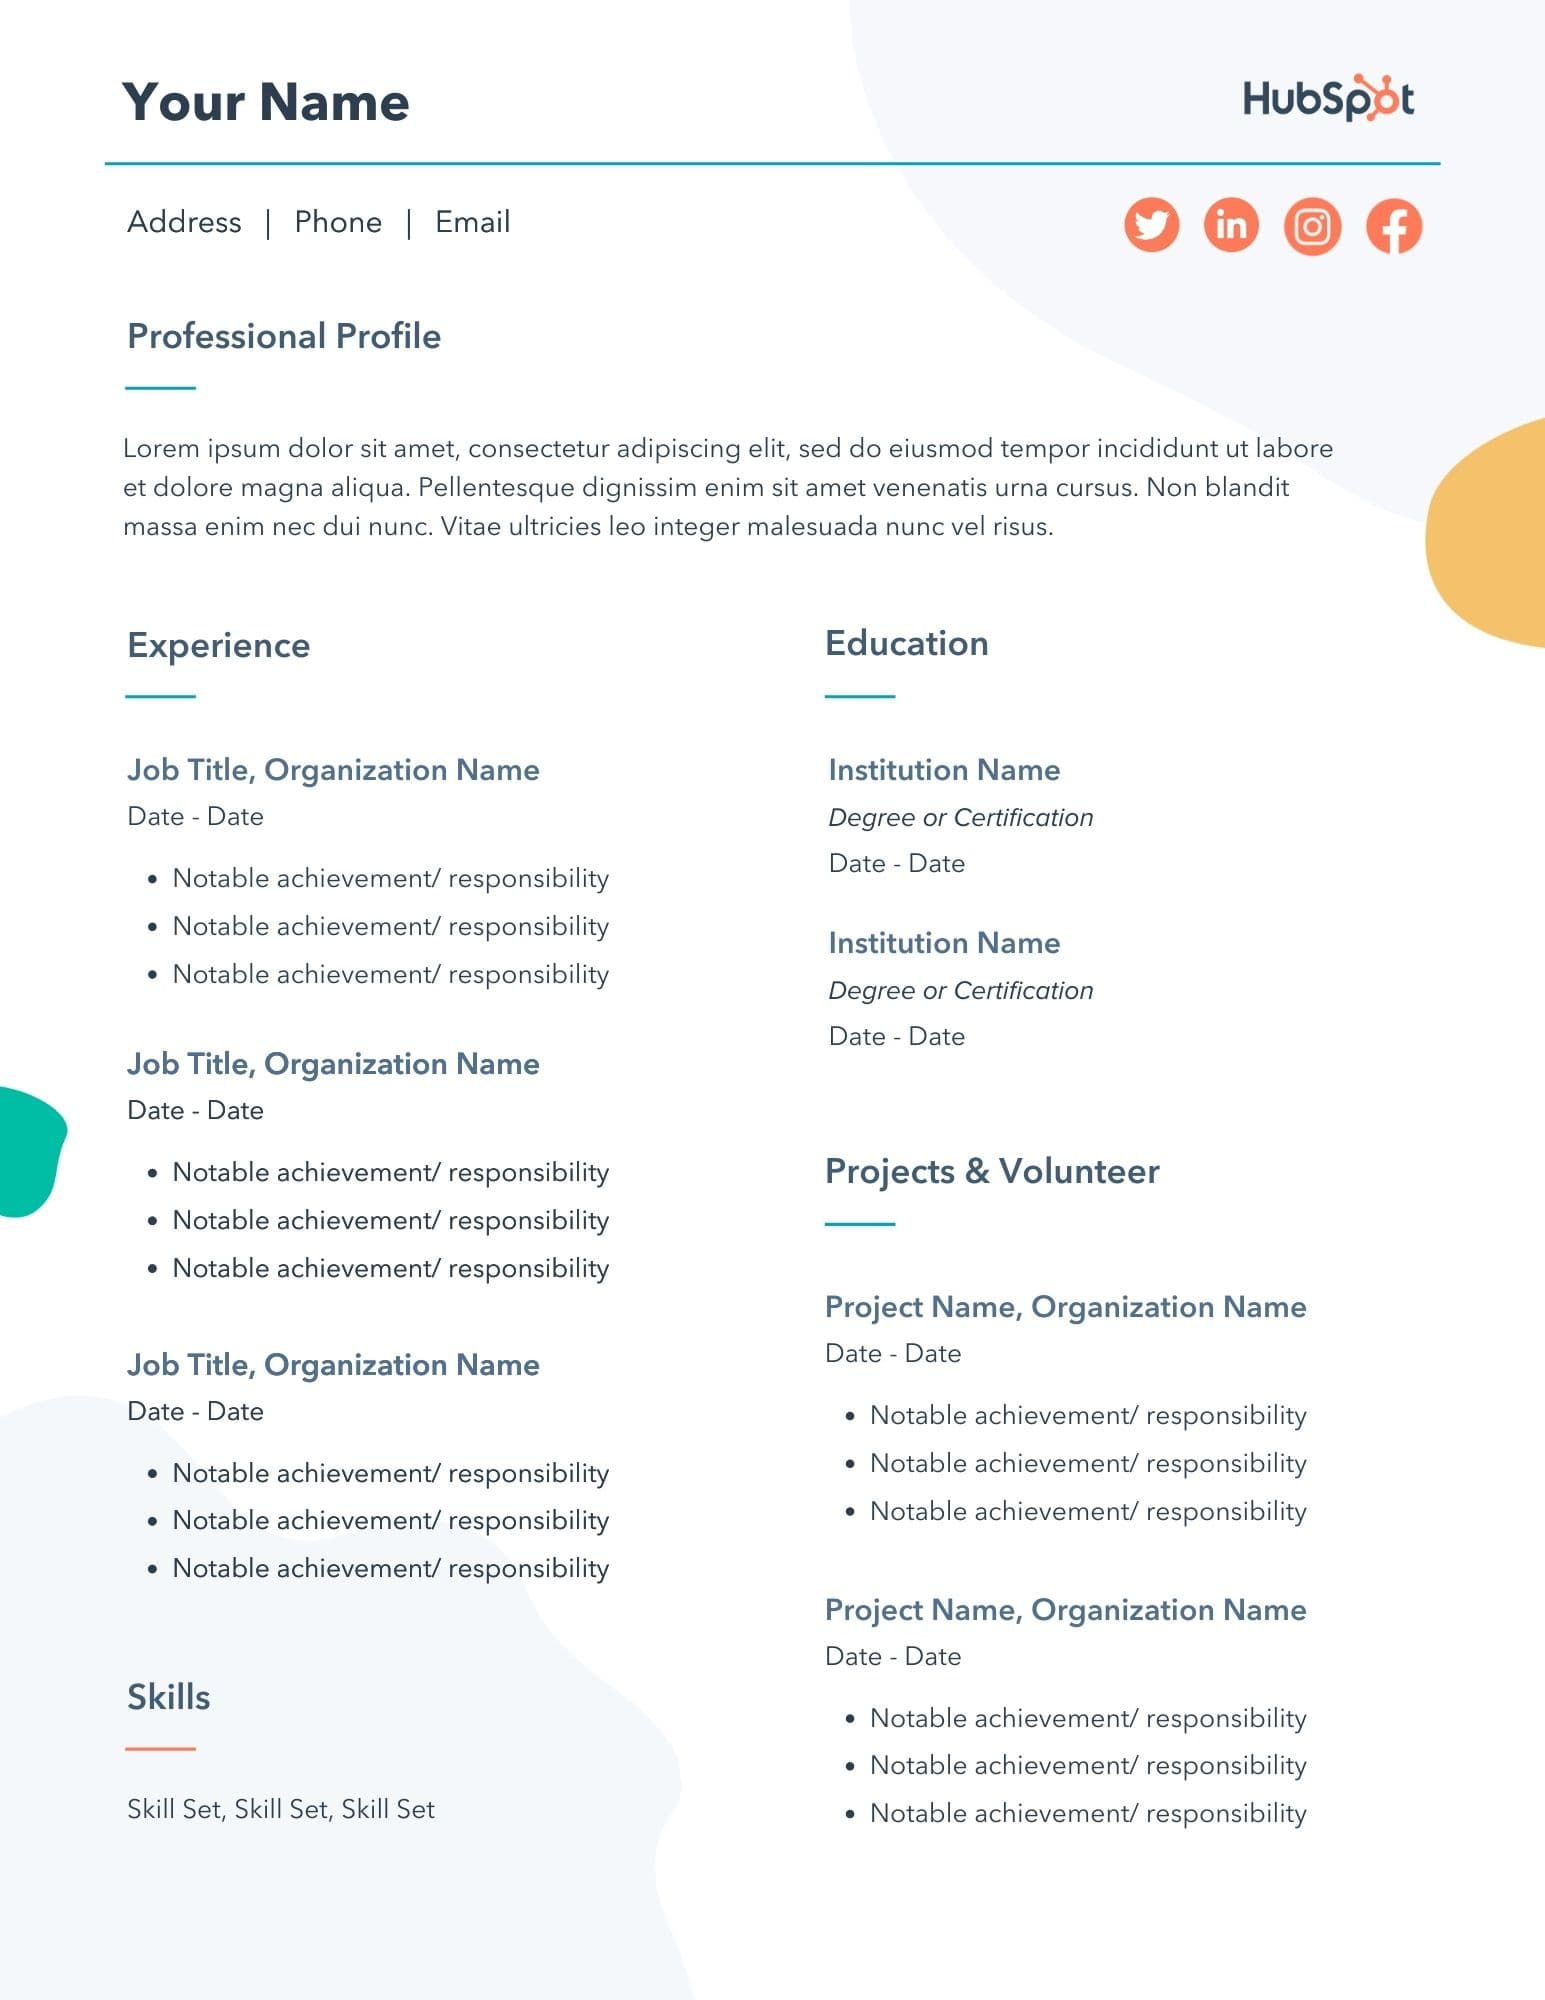 free resume templates for microsoft word to make your own medical template du livre des Resume Free Medical Resume Templates Microsoft Word